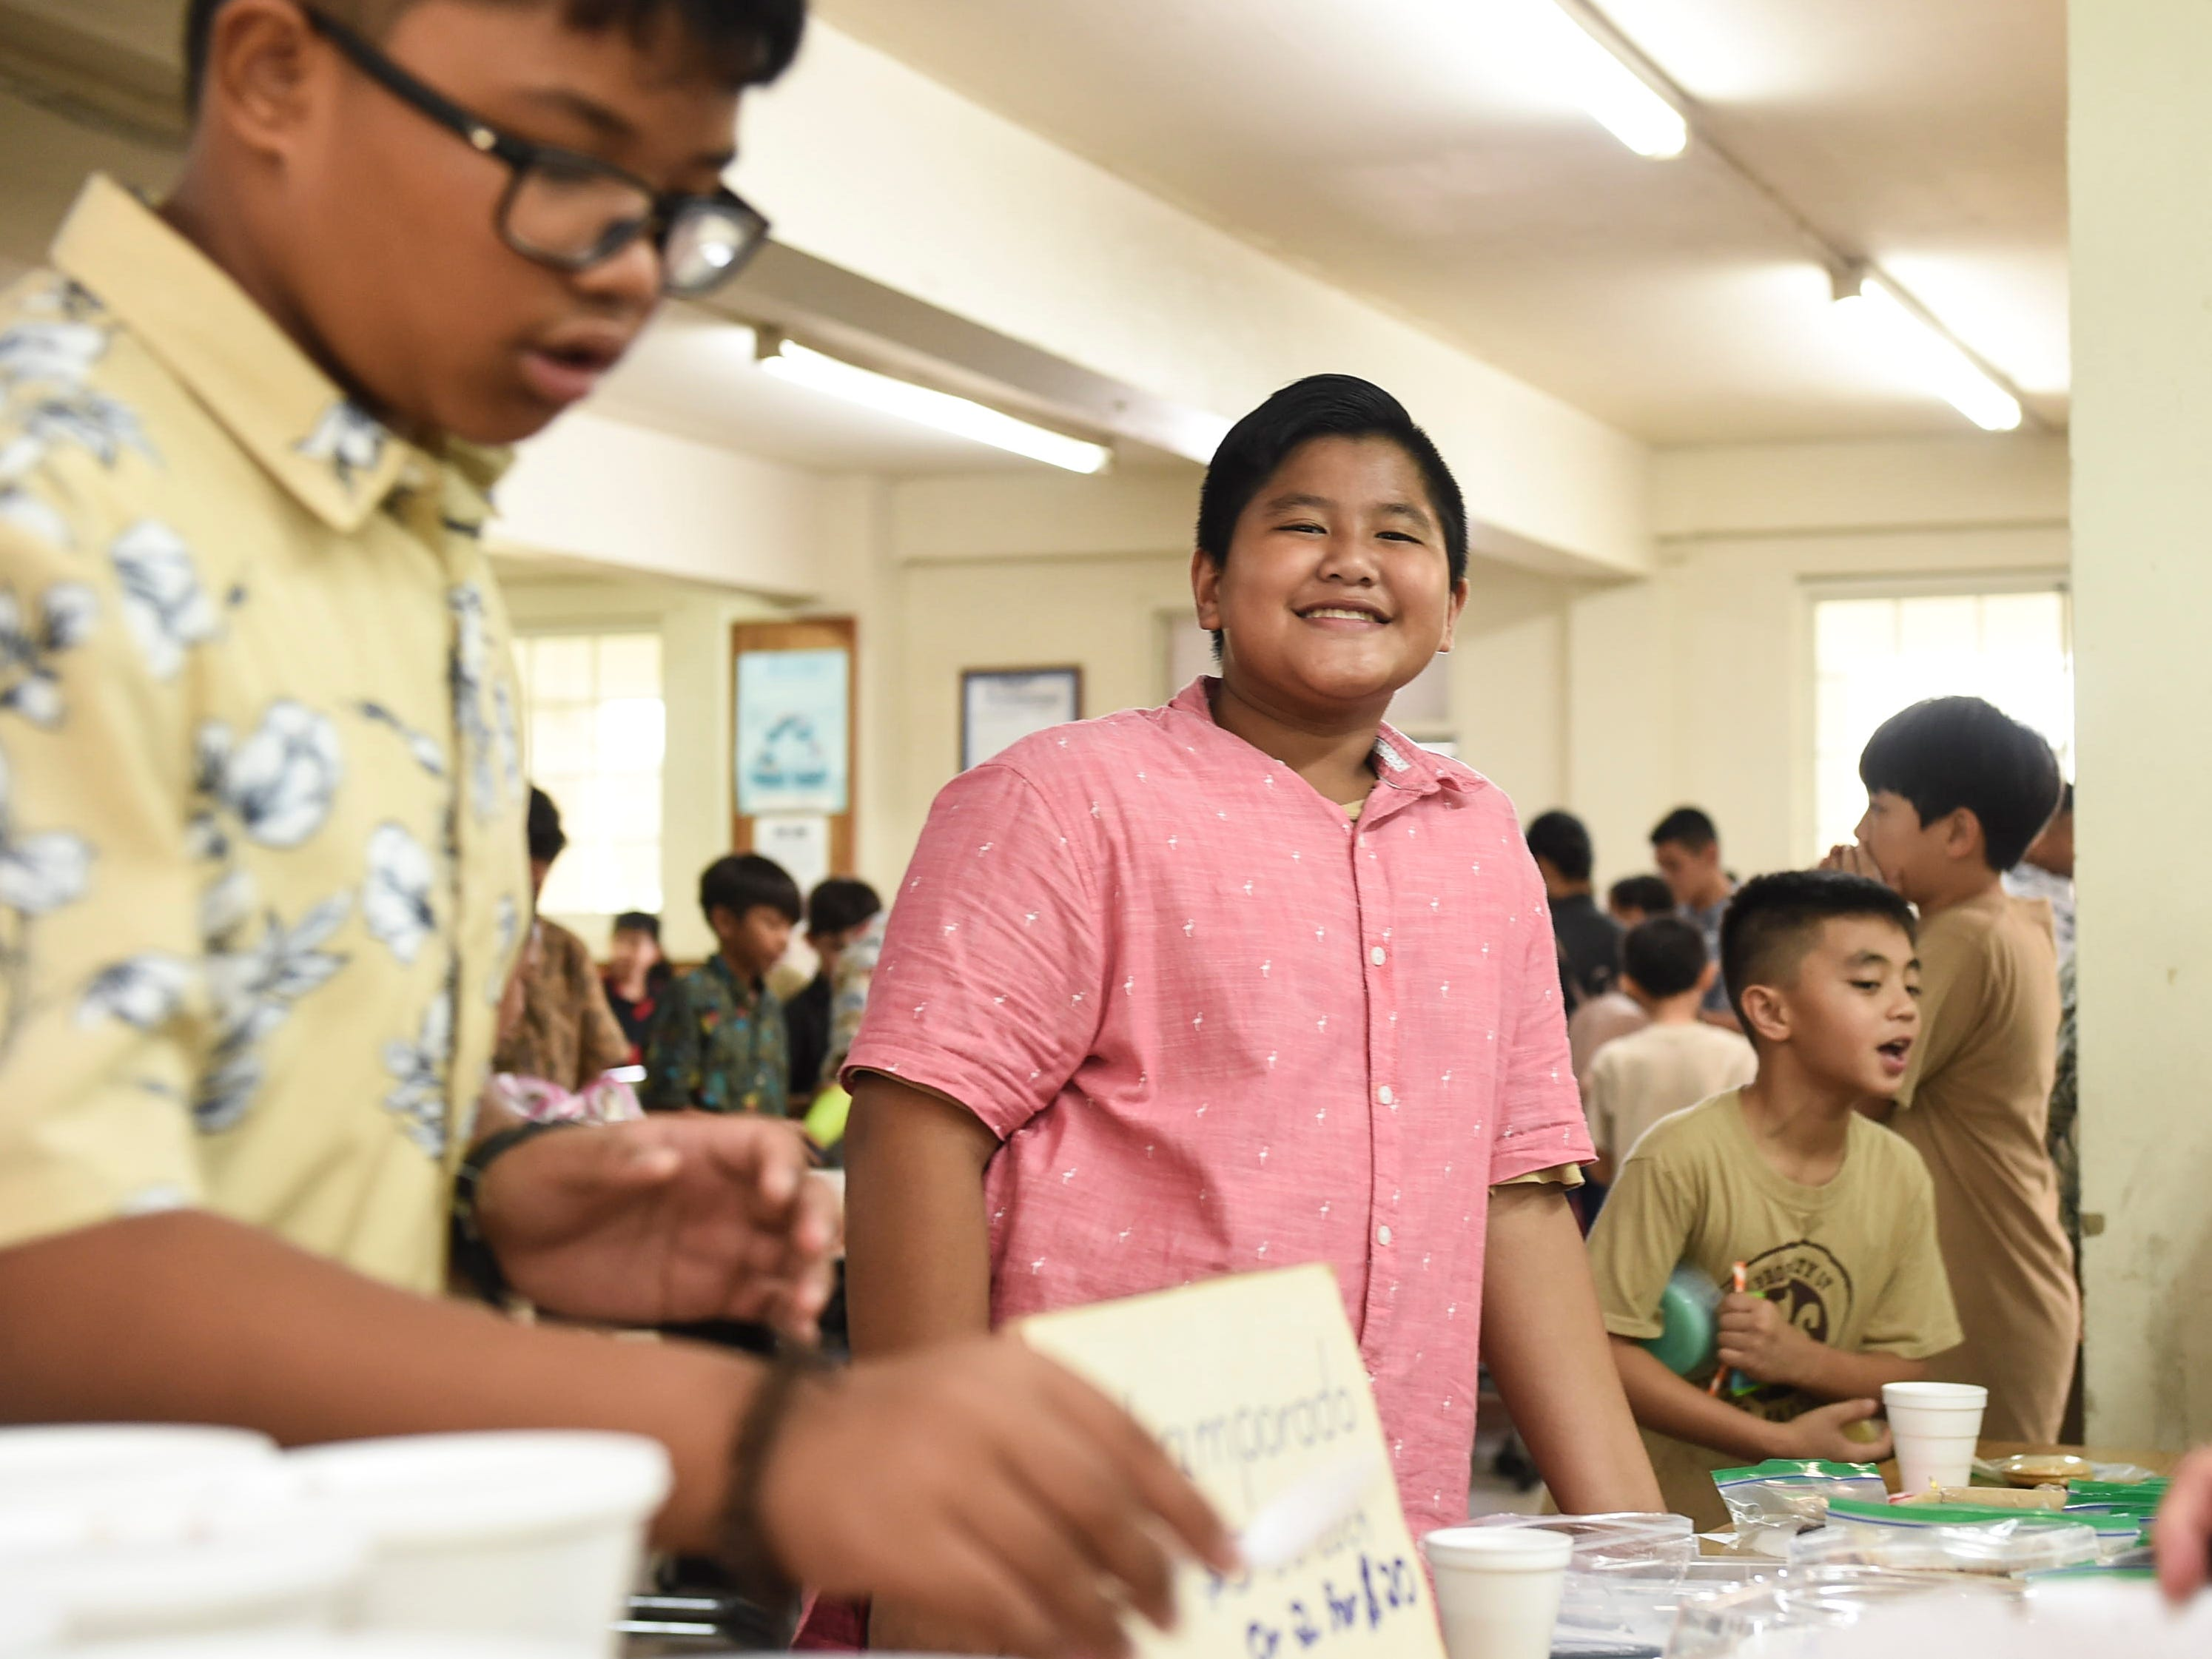 Colin Santos, 11, during the 5th Annual Ysrael School of Business Retail Bazaar and Entrepreneur Fair at Our Lady of Mount Carmel Catholic School in Agat, Jan. 18, 2019.